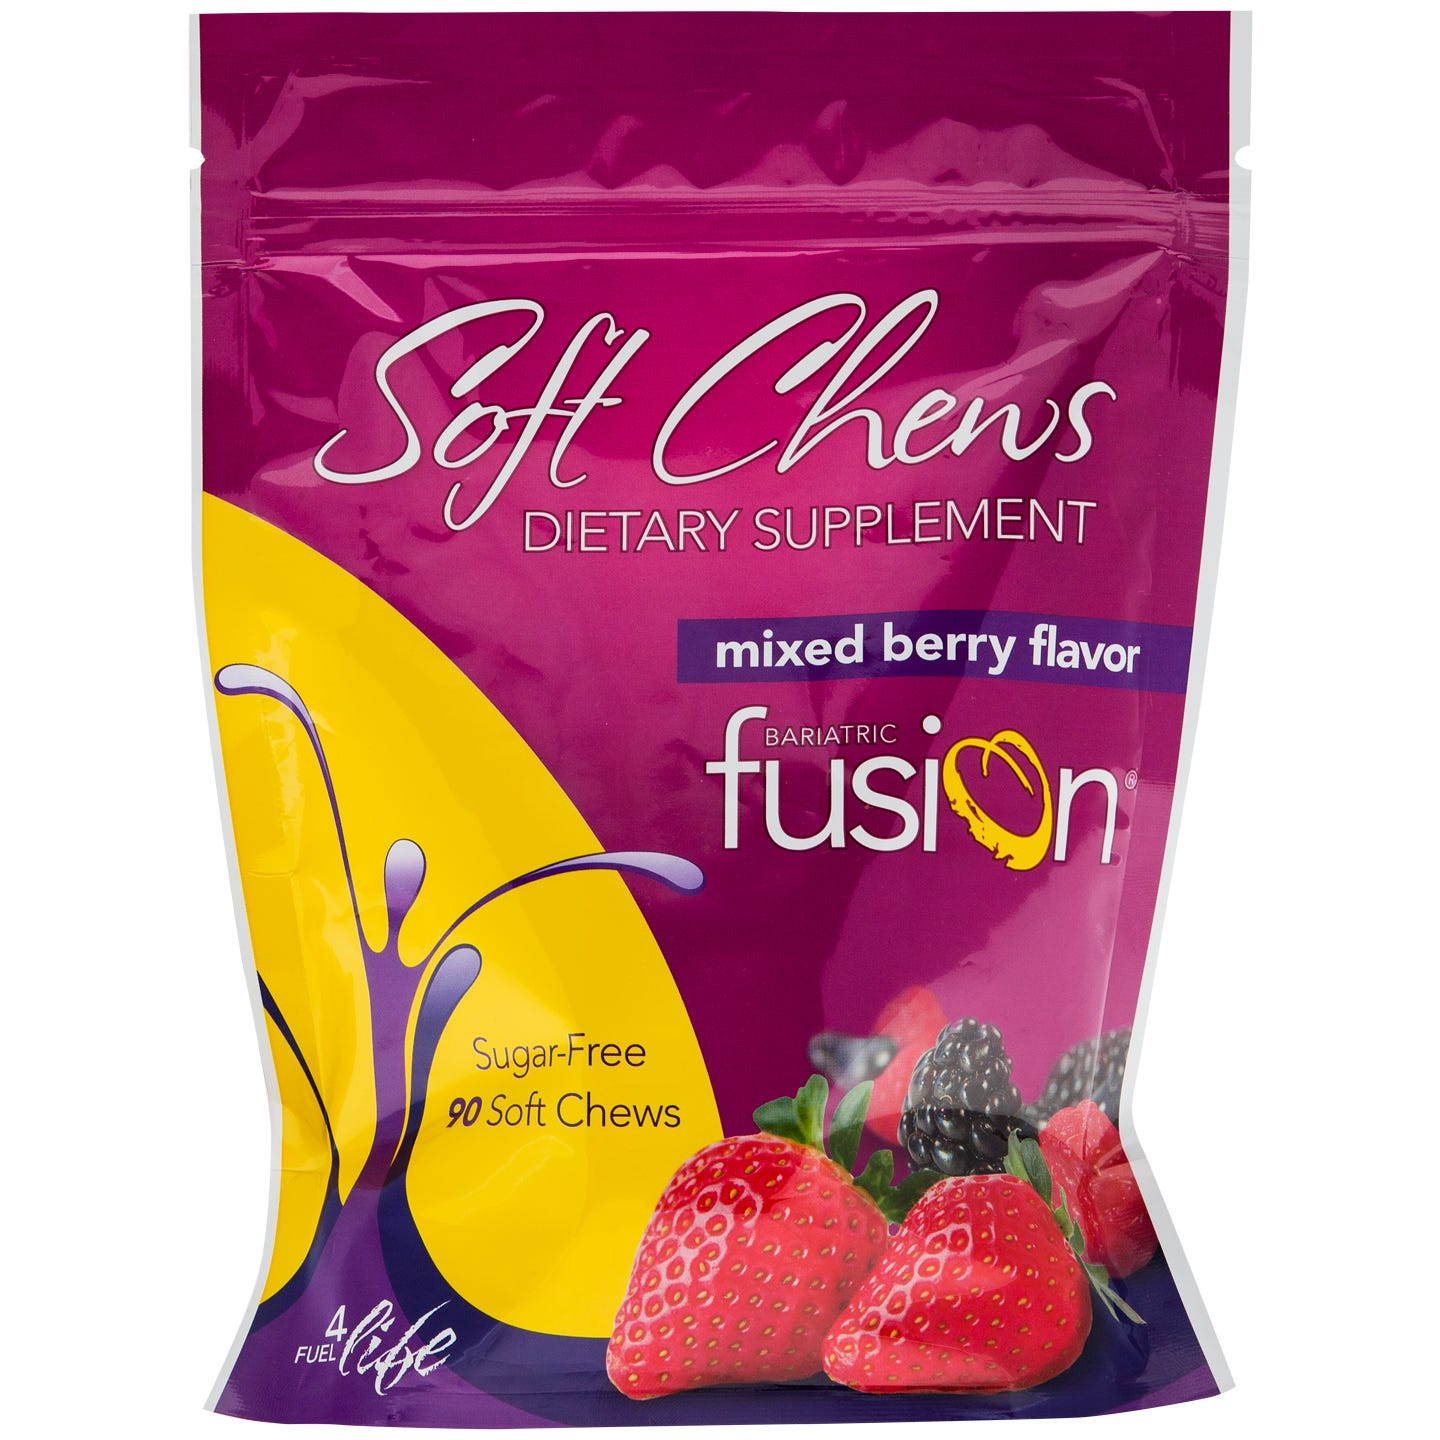 MultiVitamin Soft Chews Mixed Berry (90 ct) - Bariatric Fusion - Rapid Diet Weight Loss Products Shop